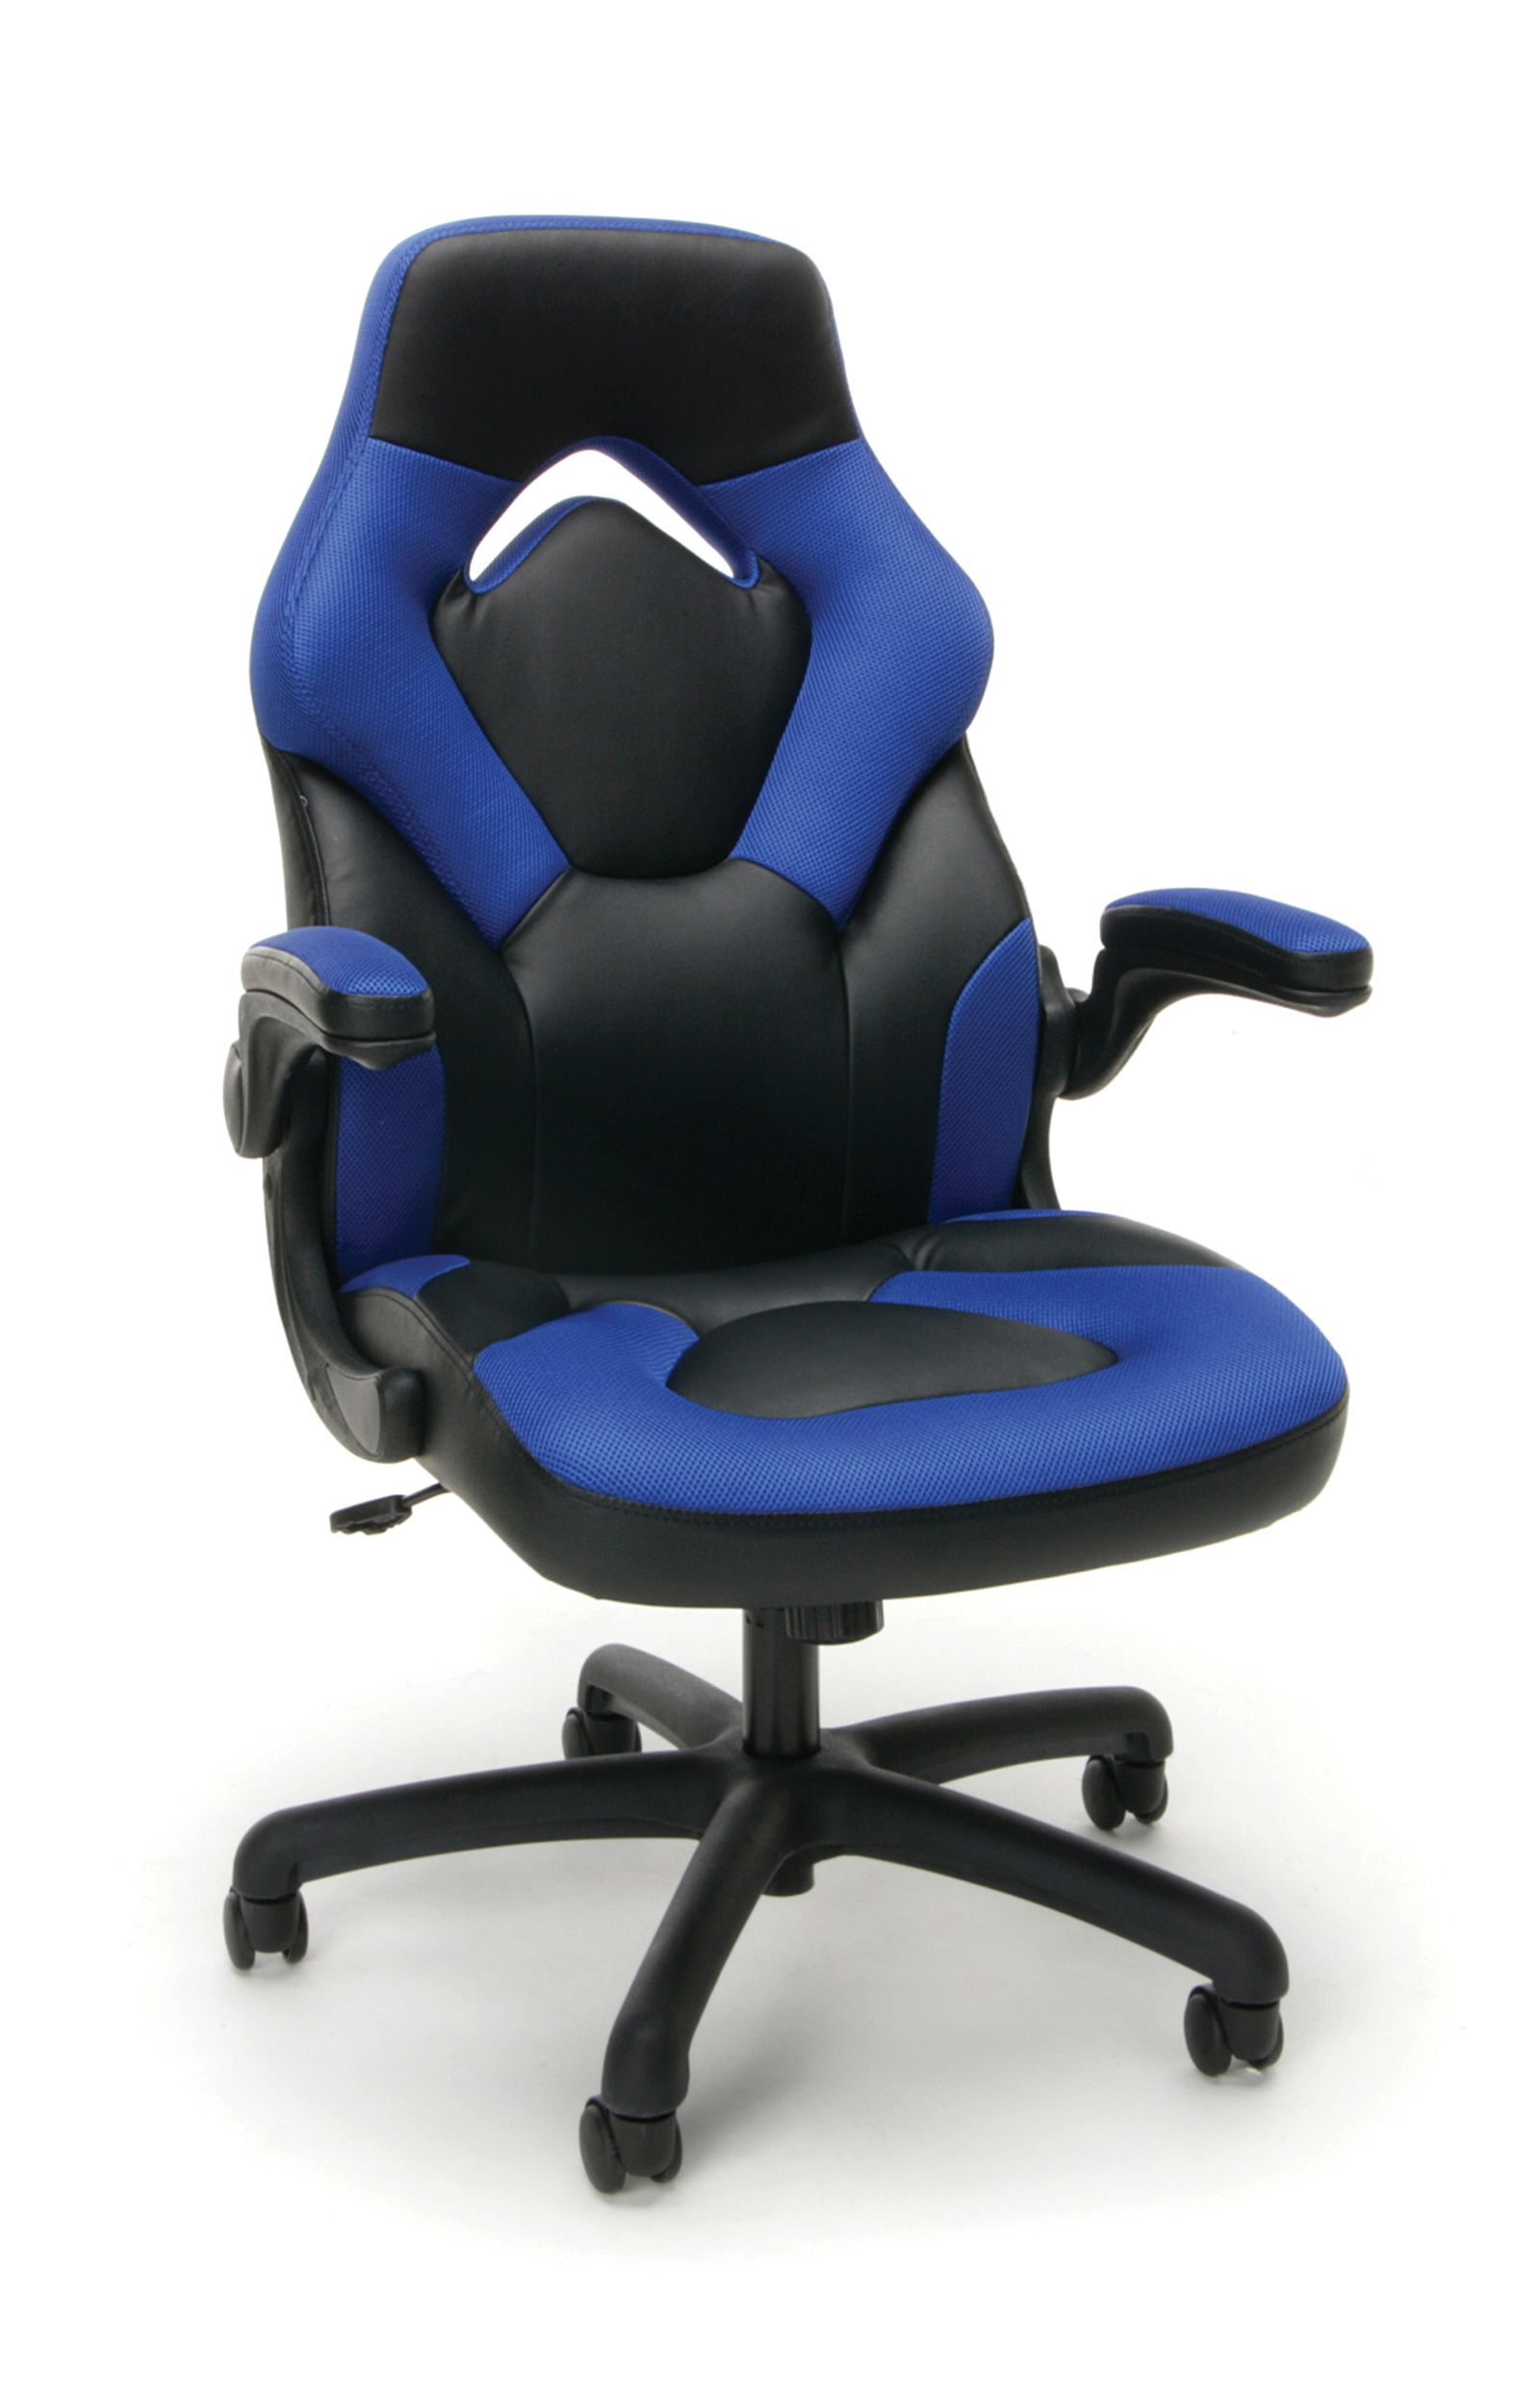 OFM Gaming Chair, Blue at Staples in 2020 Gaming chair